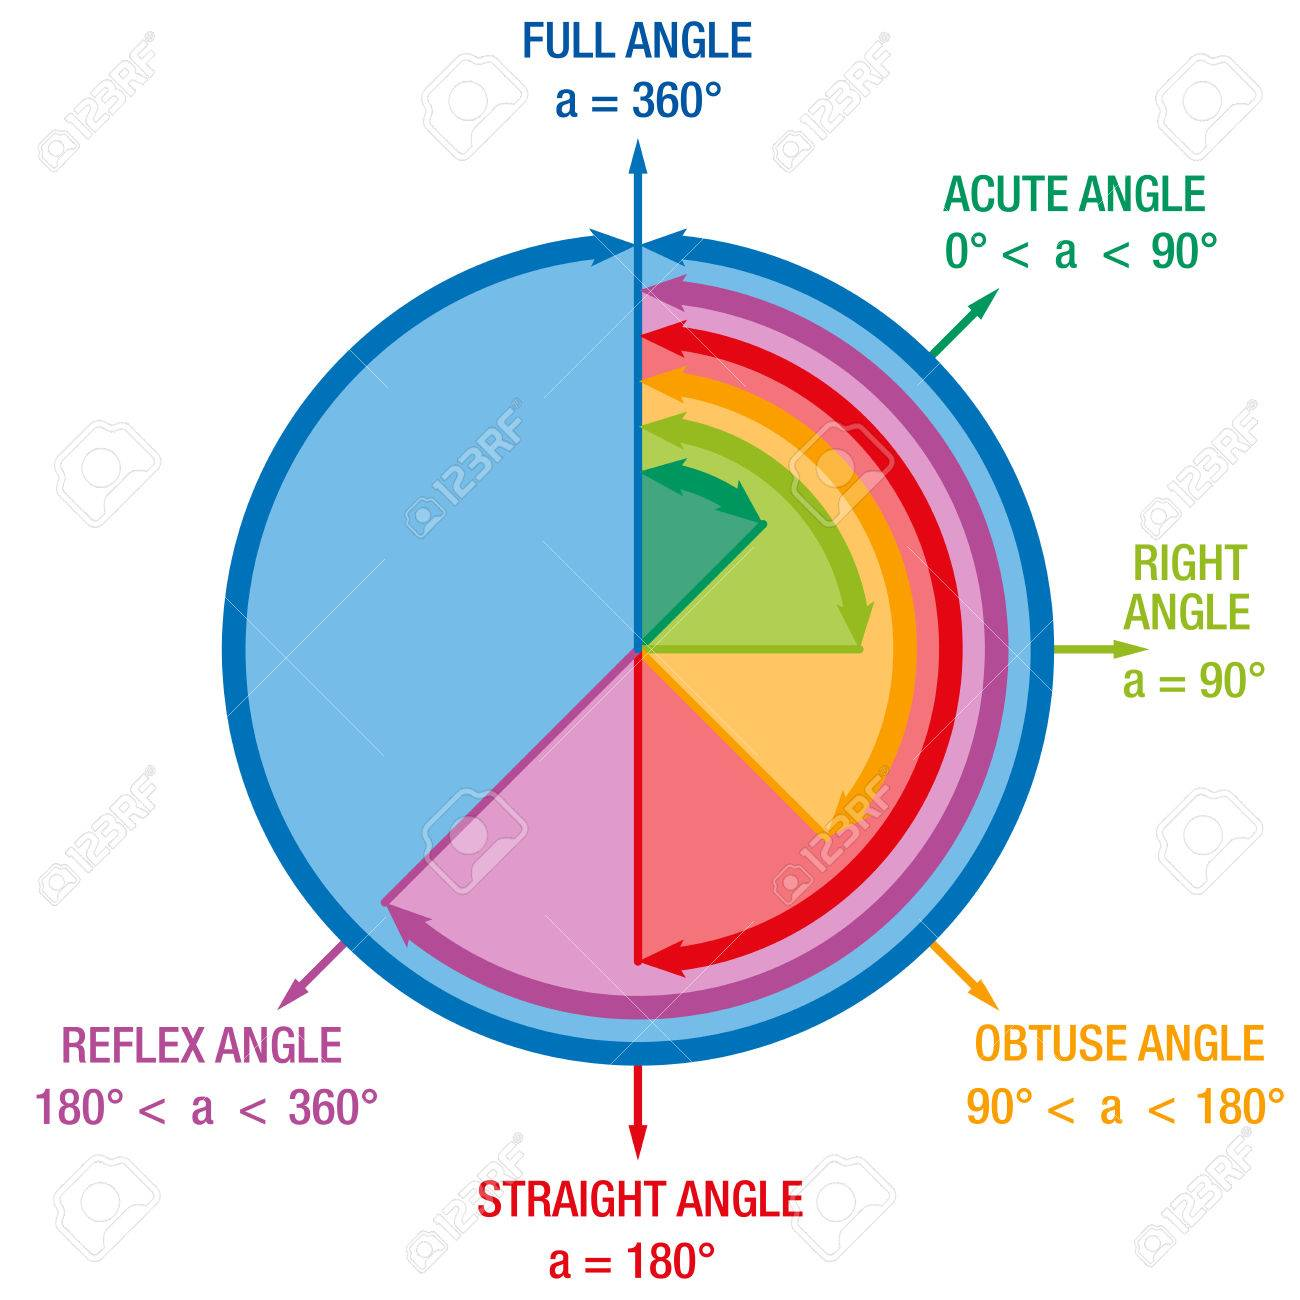 Angles from mathematics and geometry science like ACUTE ANGLE